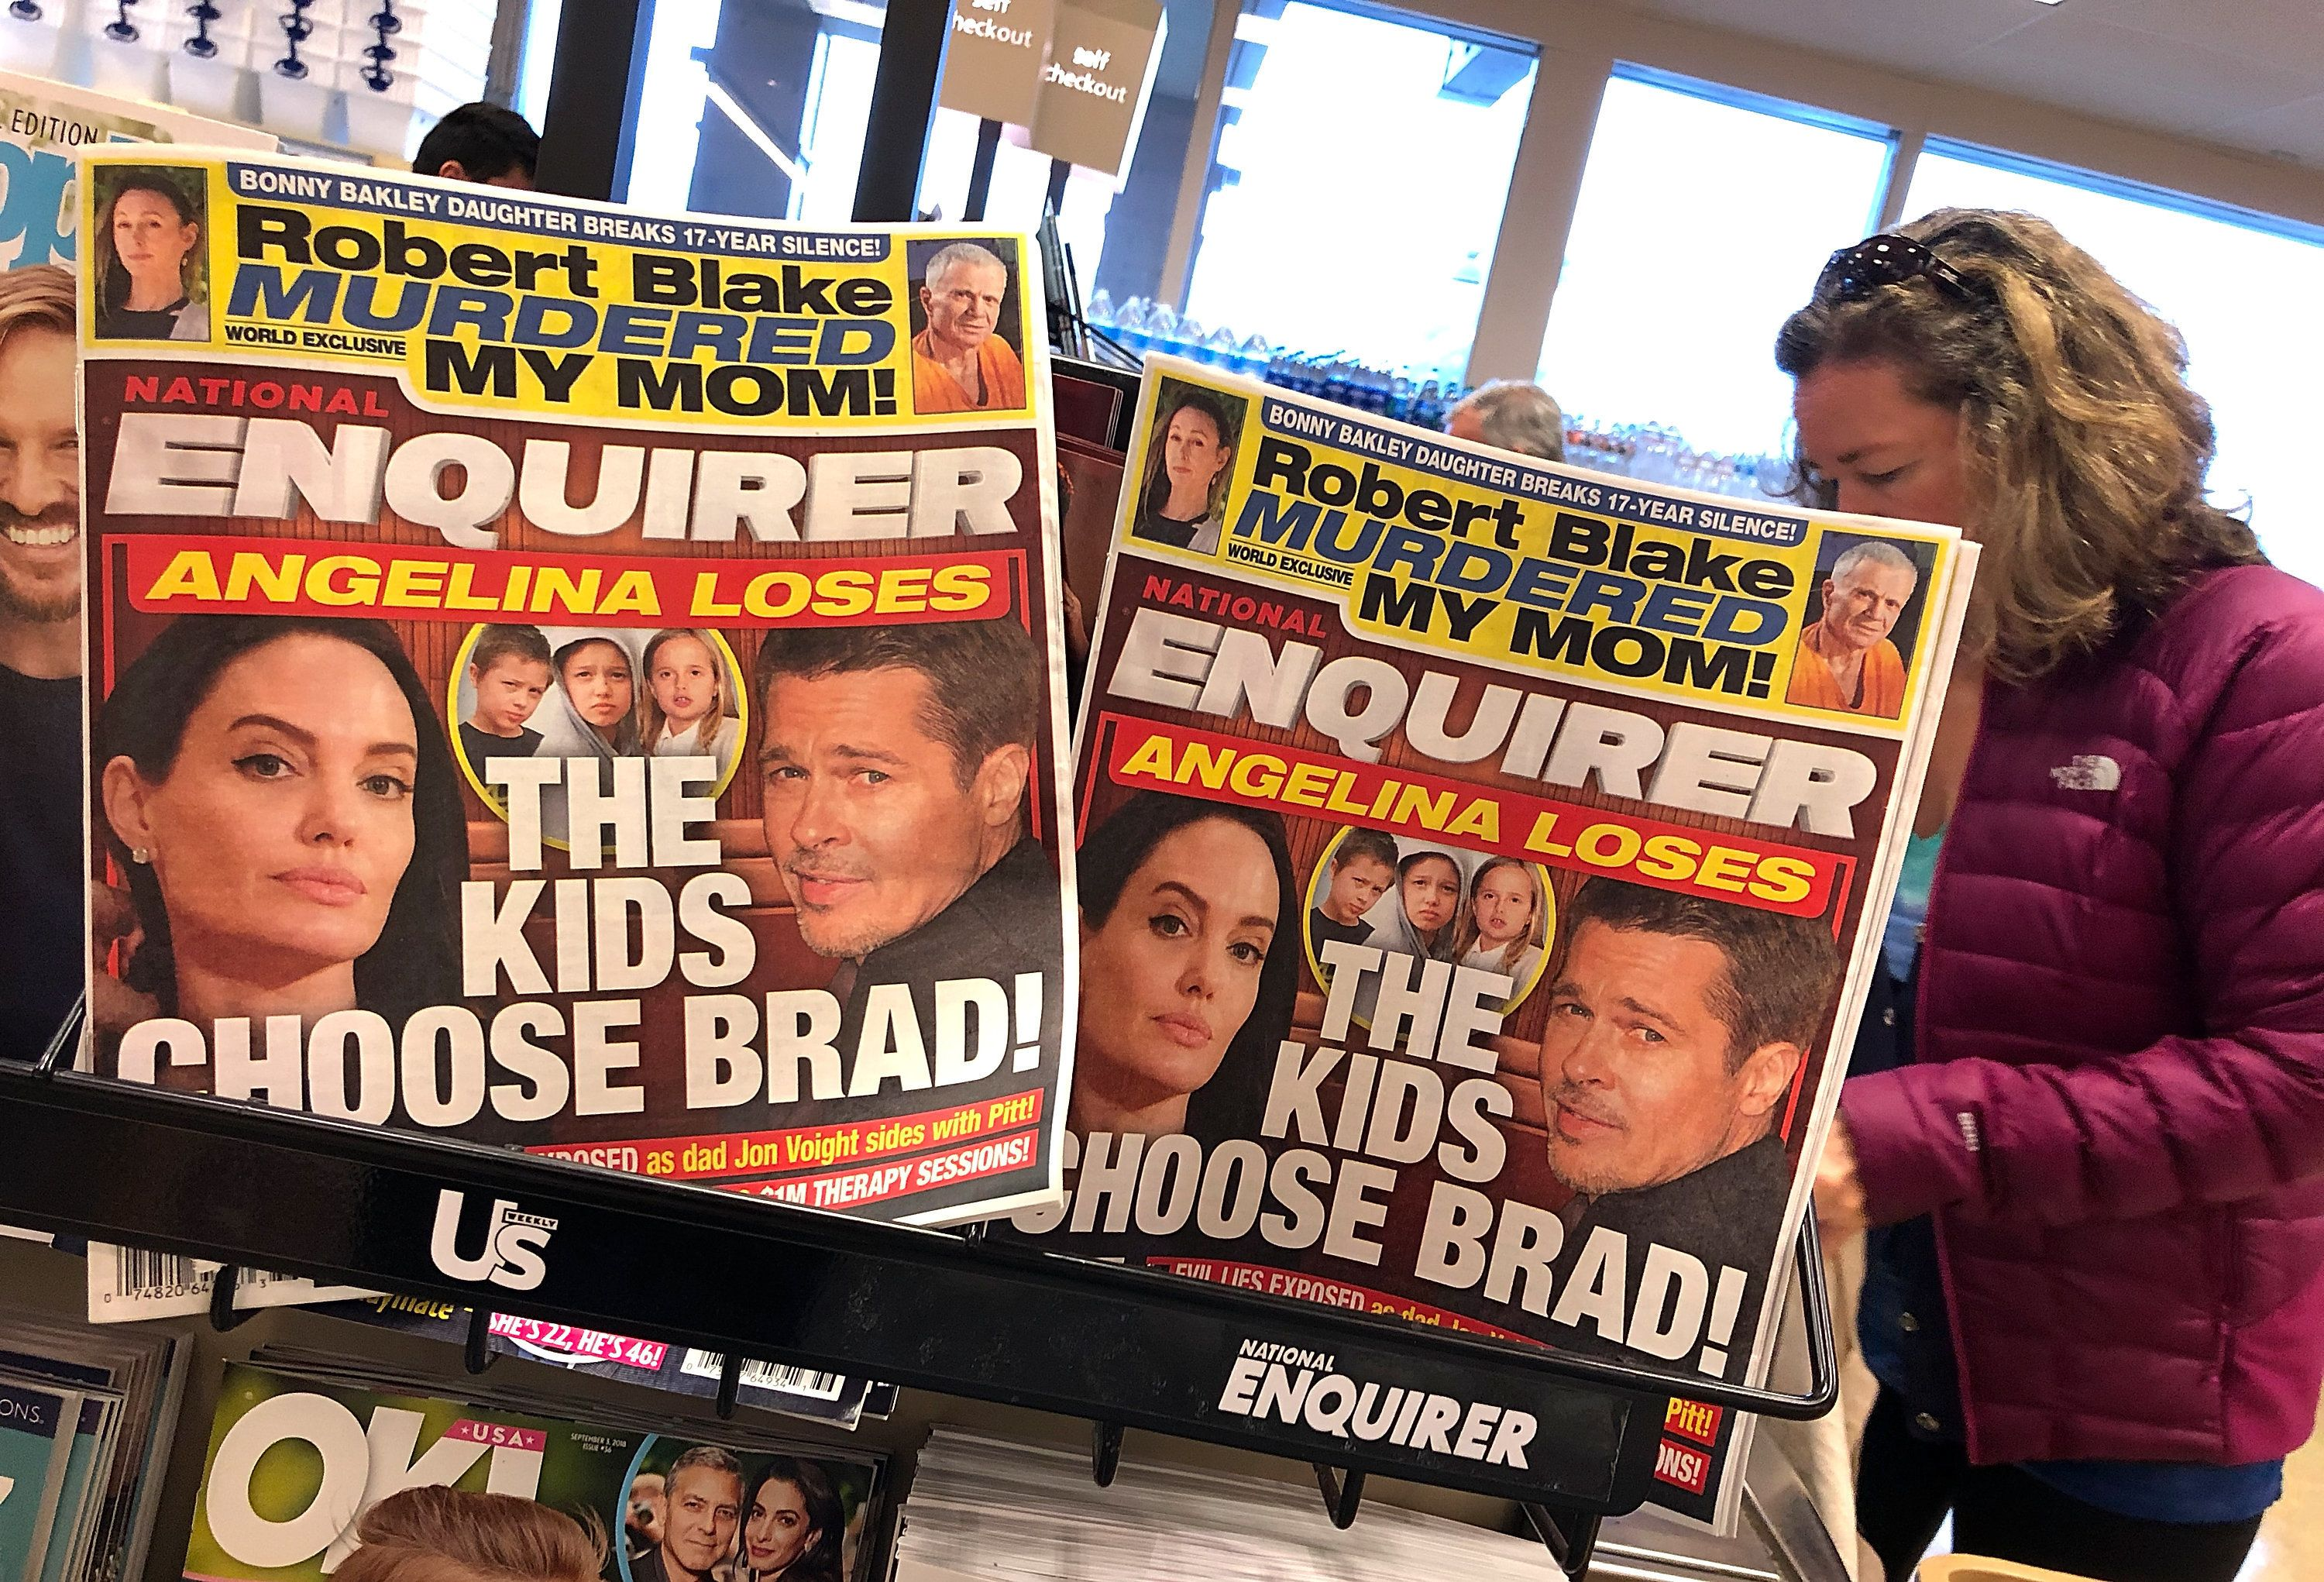 National Enquirer admits burying stories about Trump affair to influence election